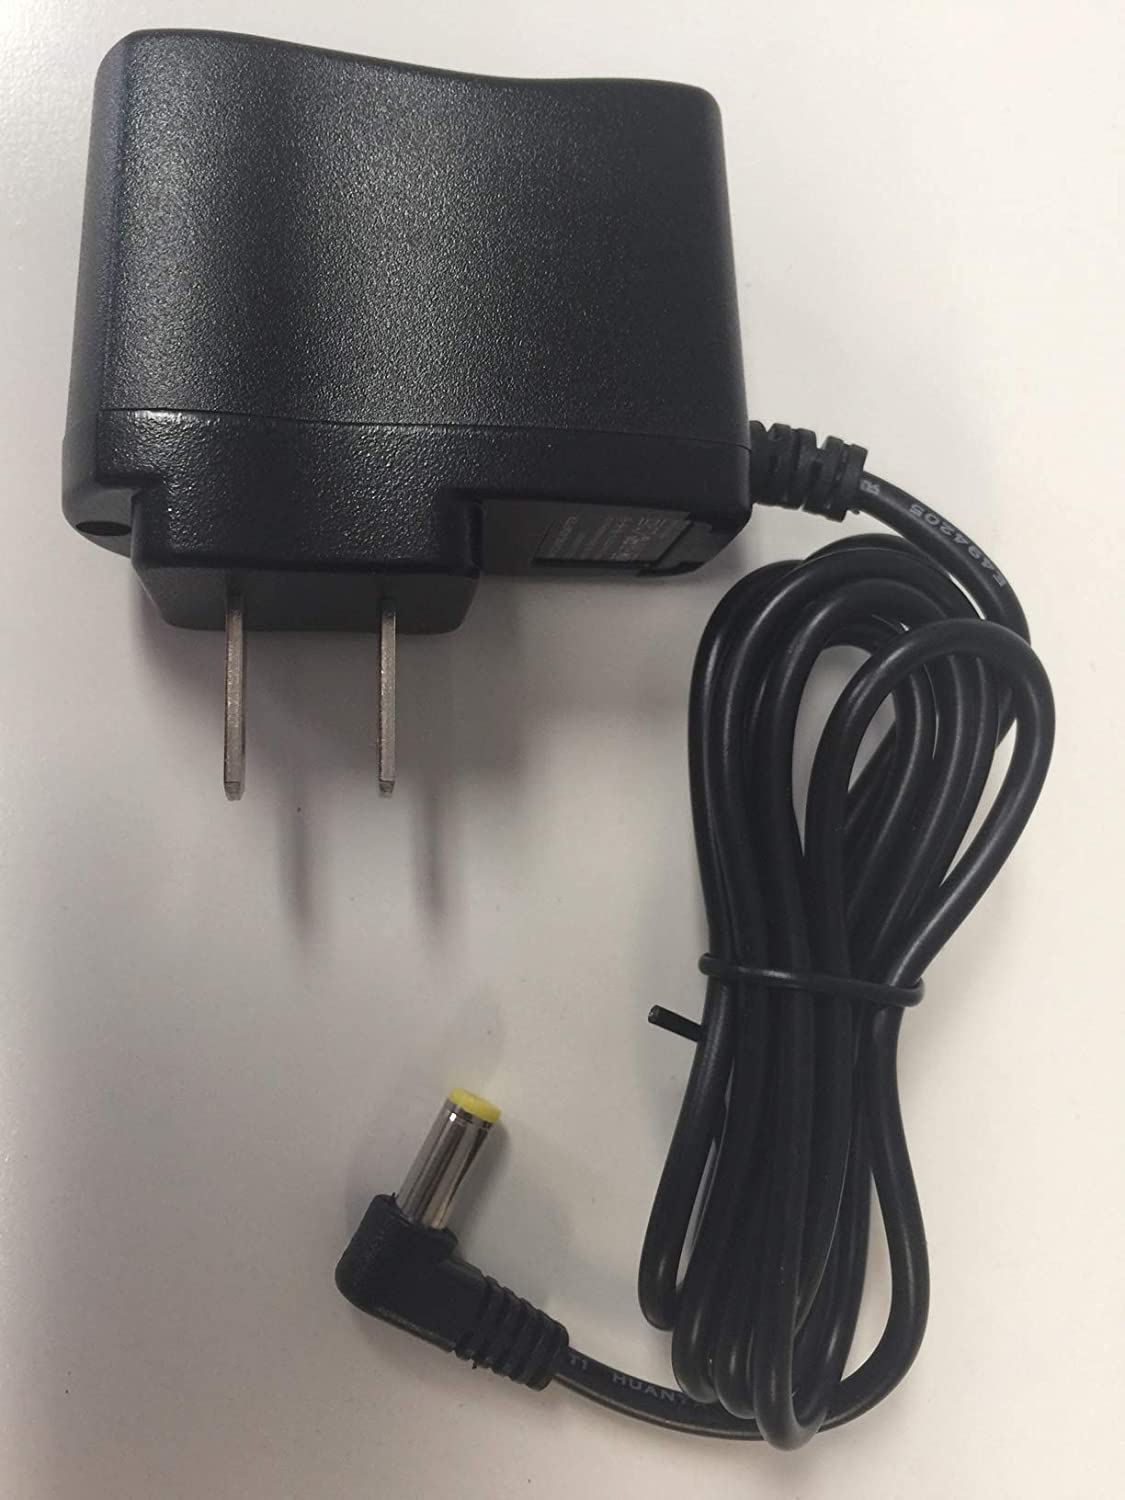 Tor-Rey 6 Volt Power Supply/AC Adaptor Transformer for LPC-40L / PC-40L /PC-80L Scale with 4 Volt Battery